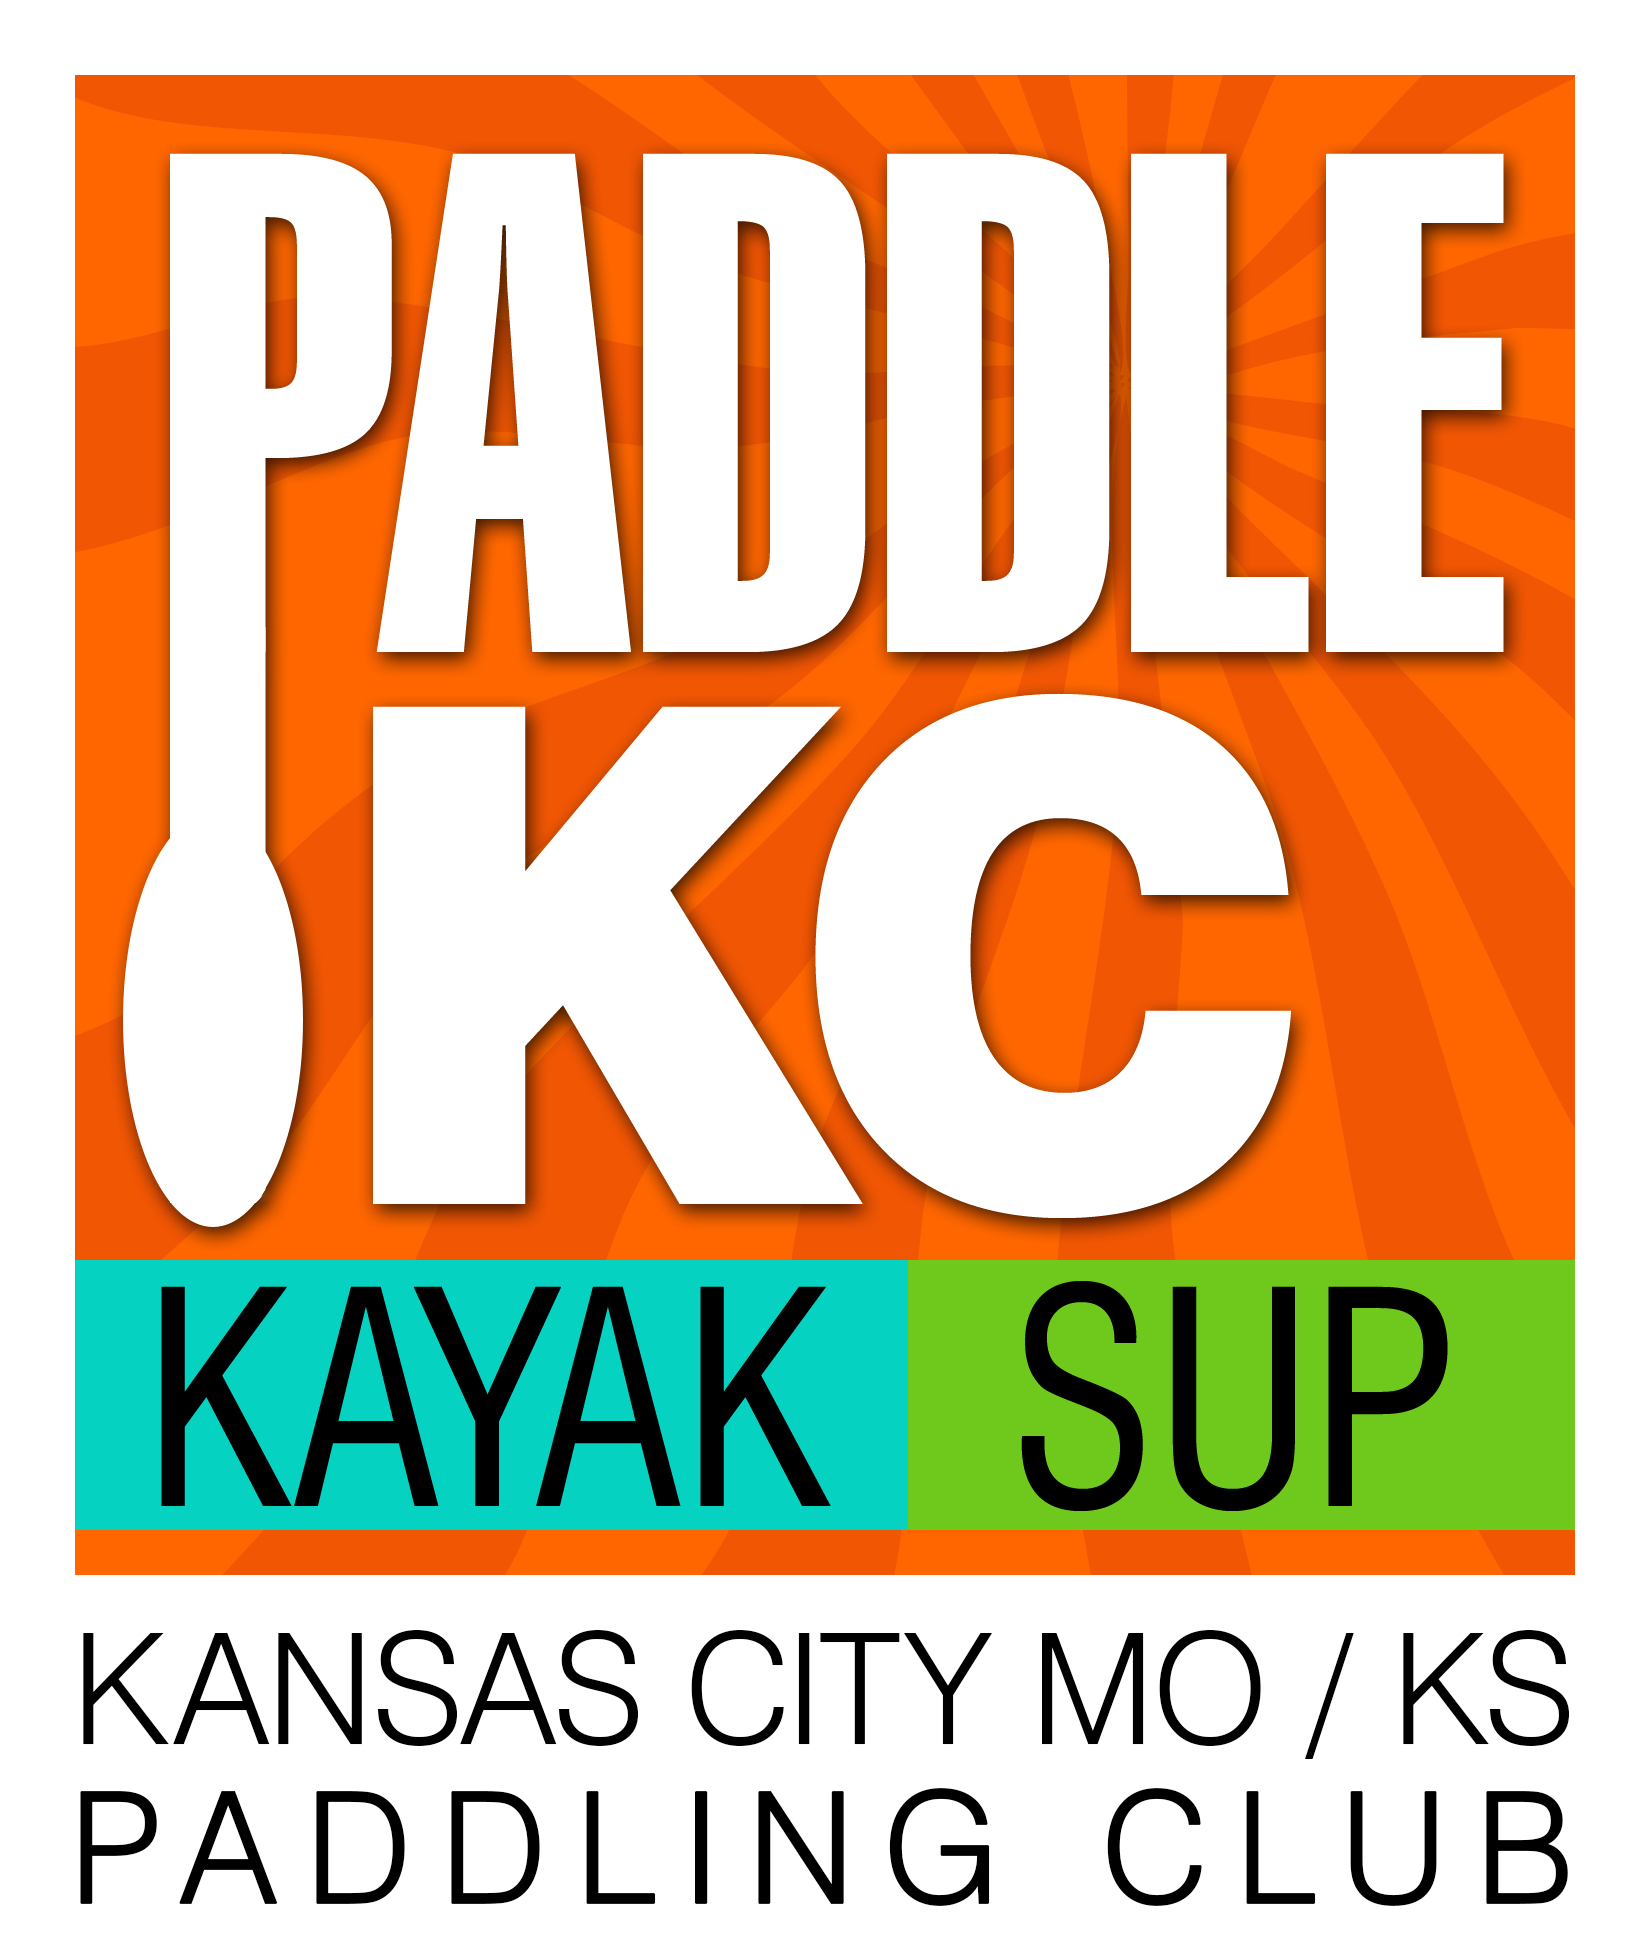 Paddle KC: Kansas City Paddling Club